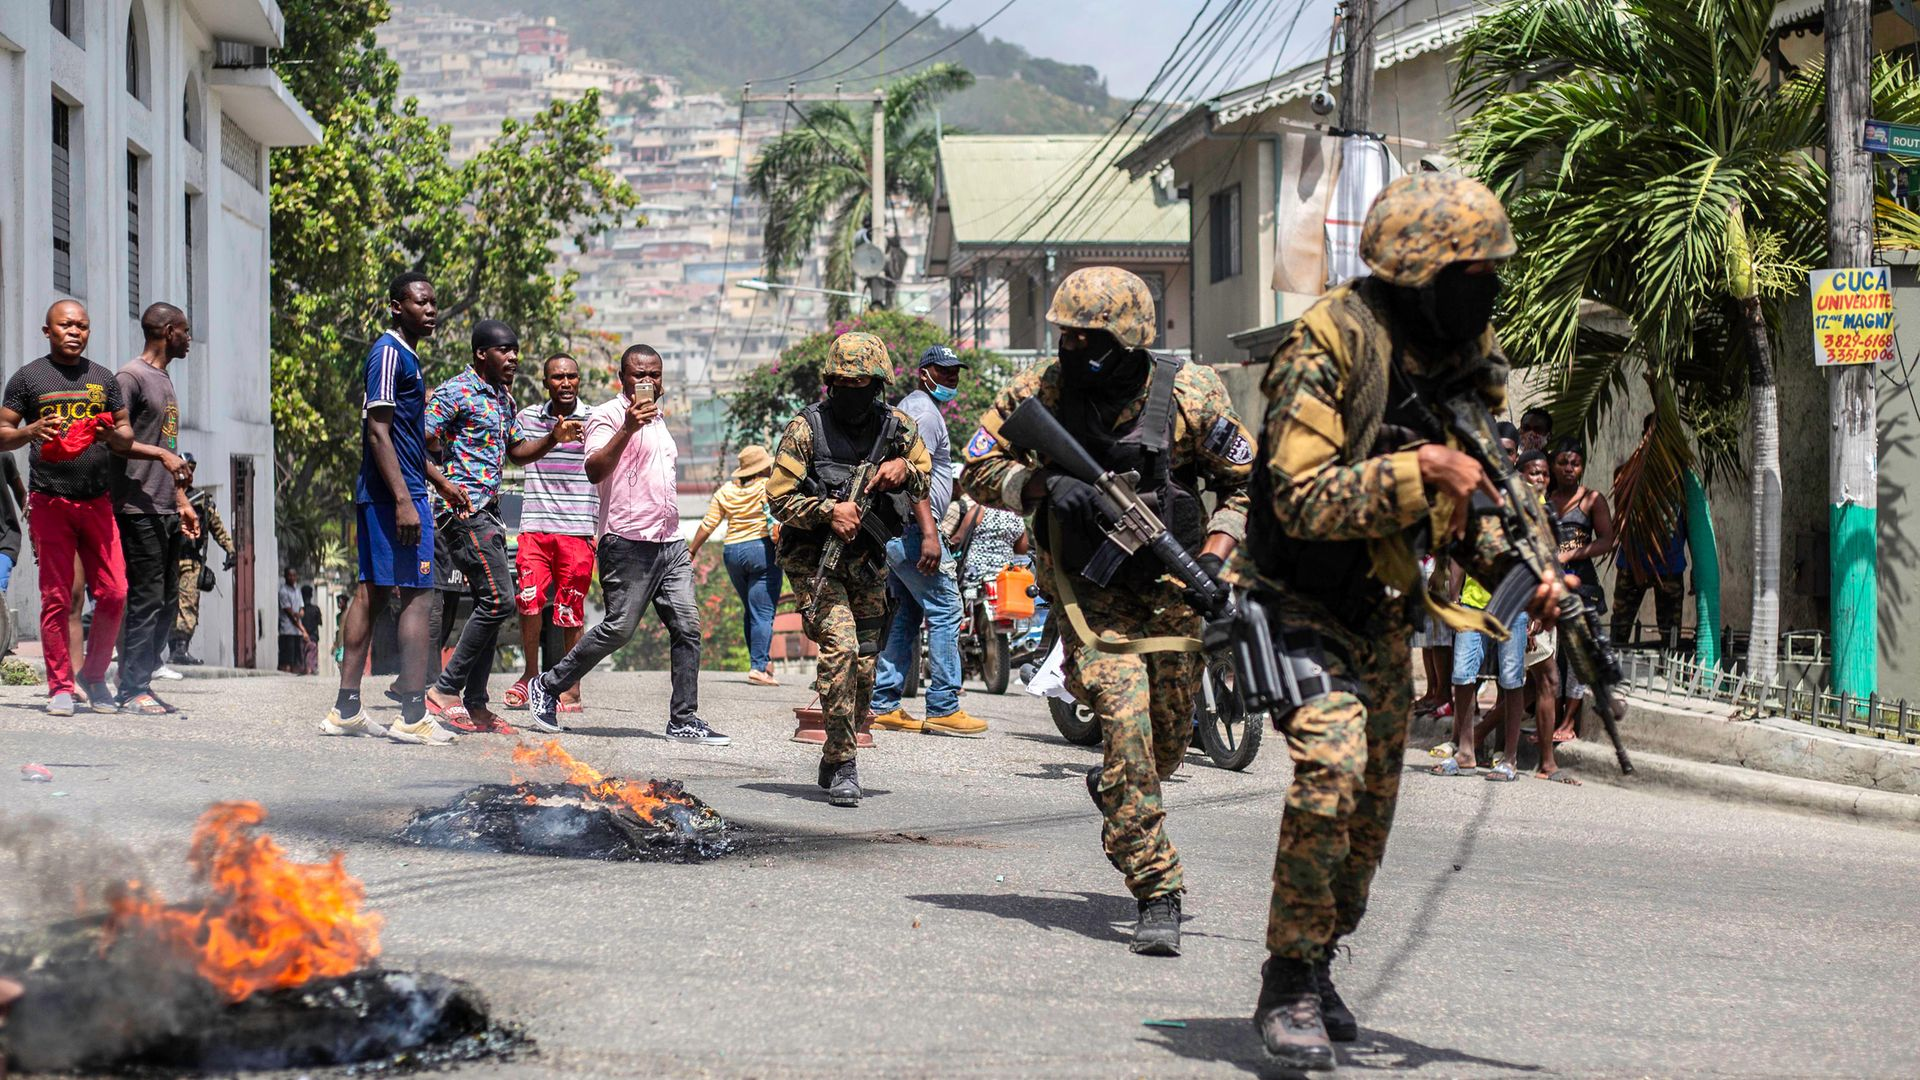 Unrest flares near the police station in Petion Ville after the murder of Haitian president Jovenel Moise in the neighbourhood - Credit: Getty Images